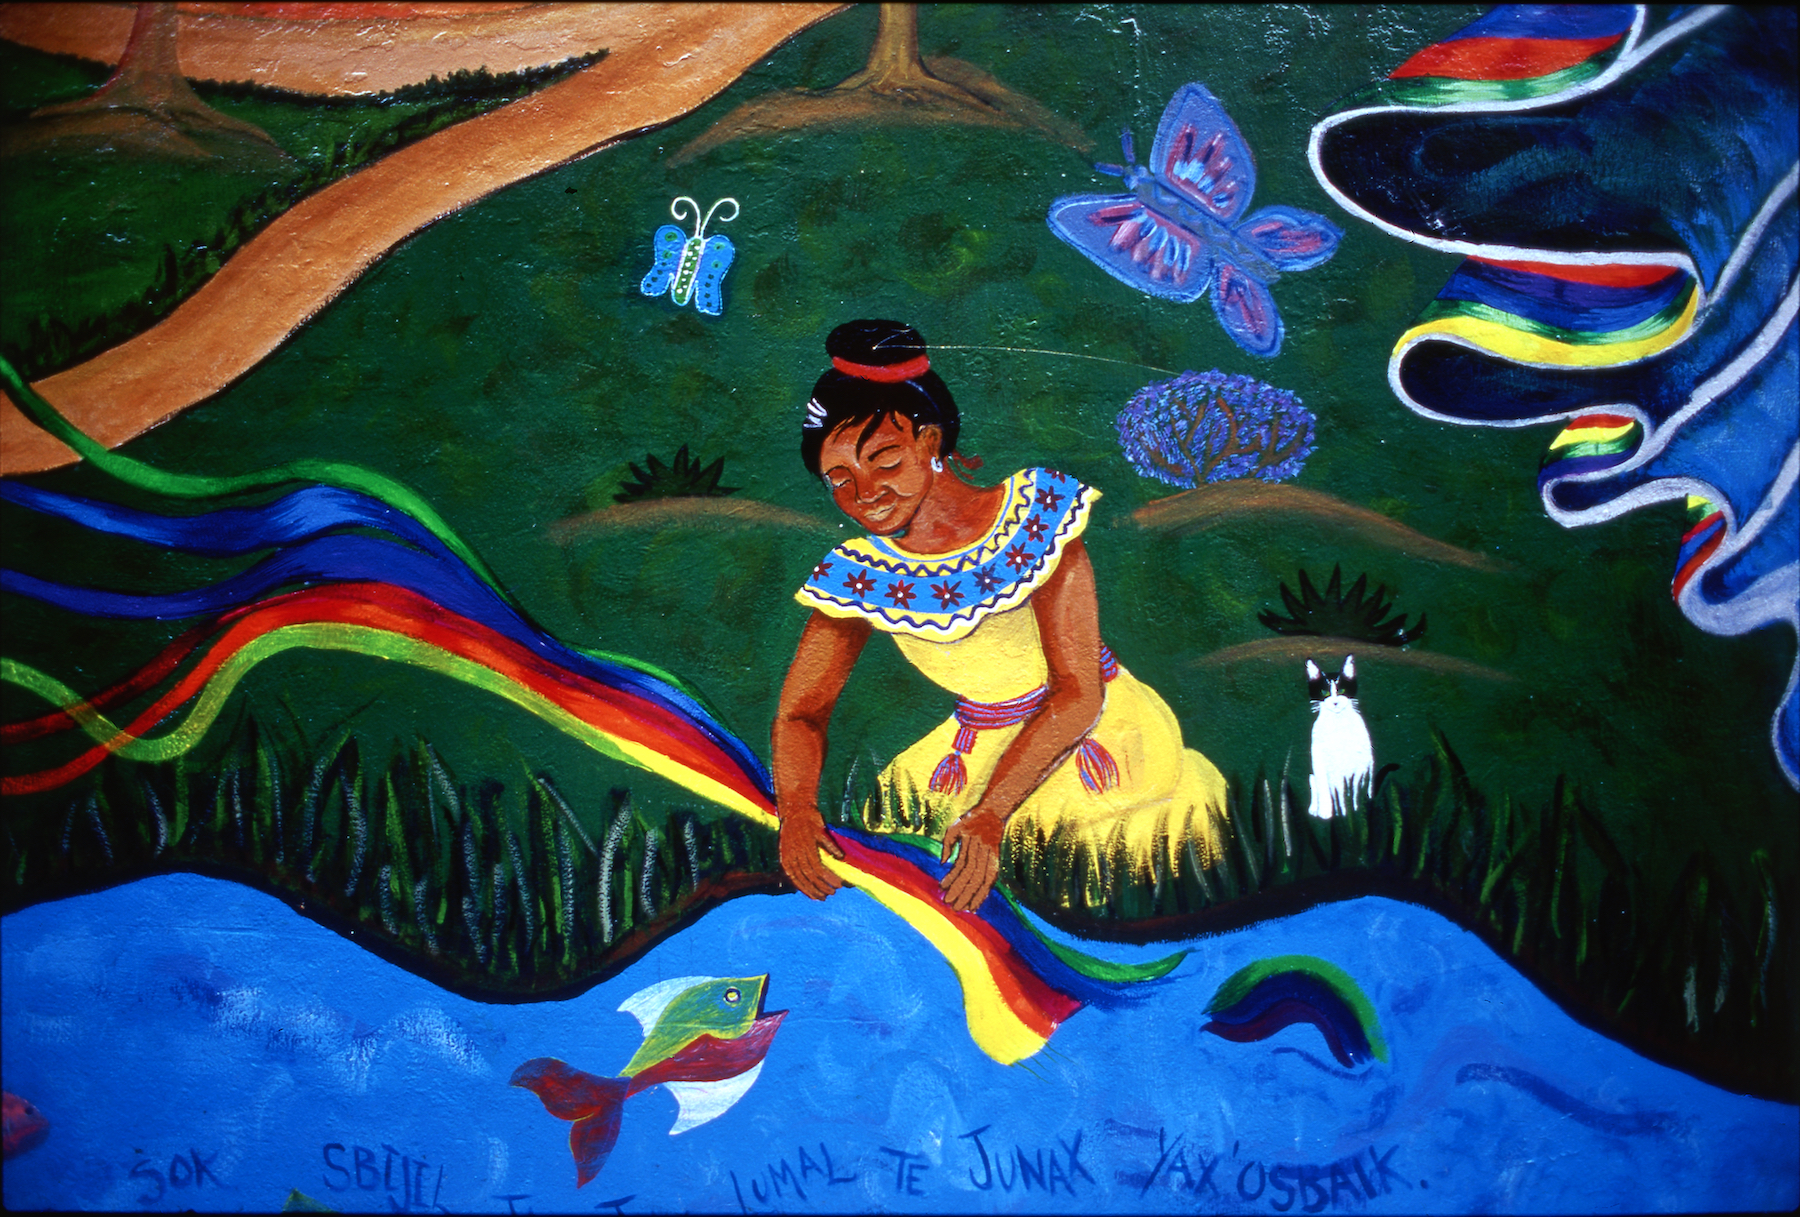 Mural depicts a woman wetting a multi-colored cloth in a rushing river. Fish swim by